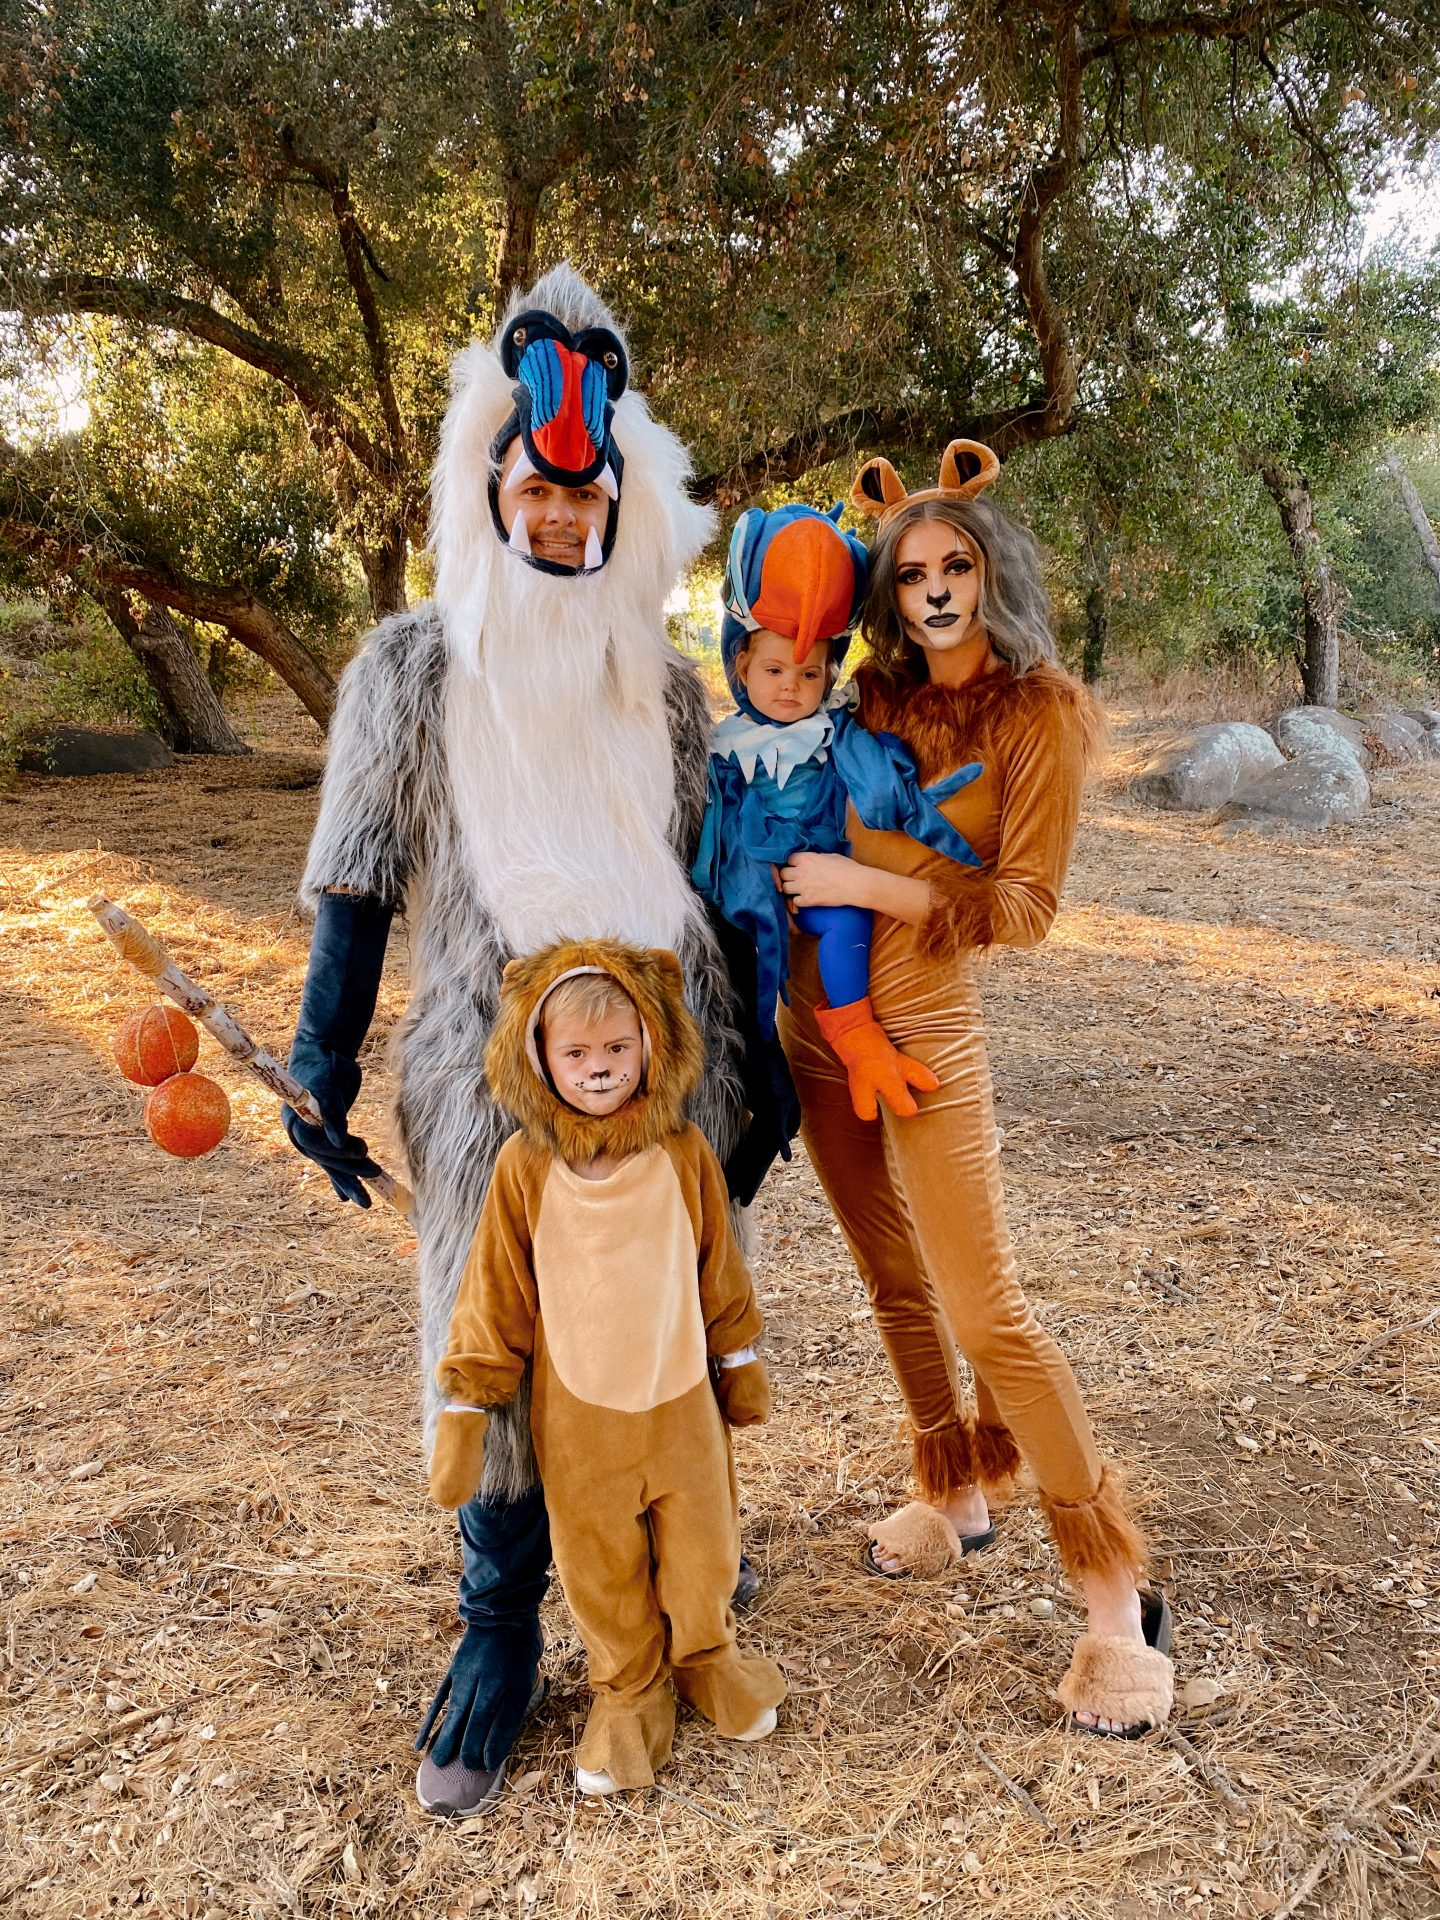 Family Halloween Costumes by popular San Diego lifestyle blog, Navy Grace: image of a family dressed up as characters from The Lion King.